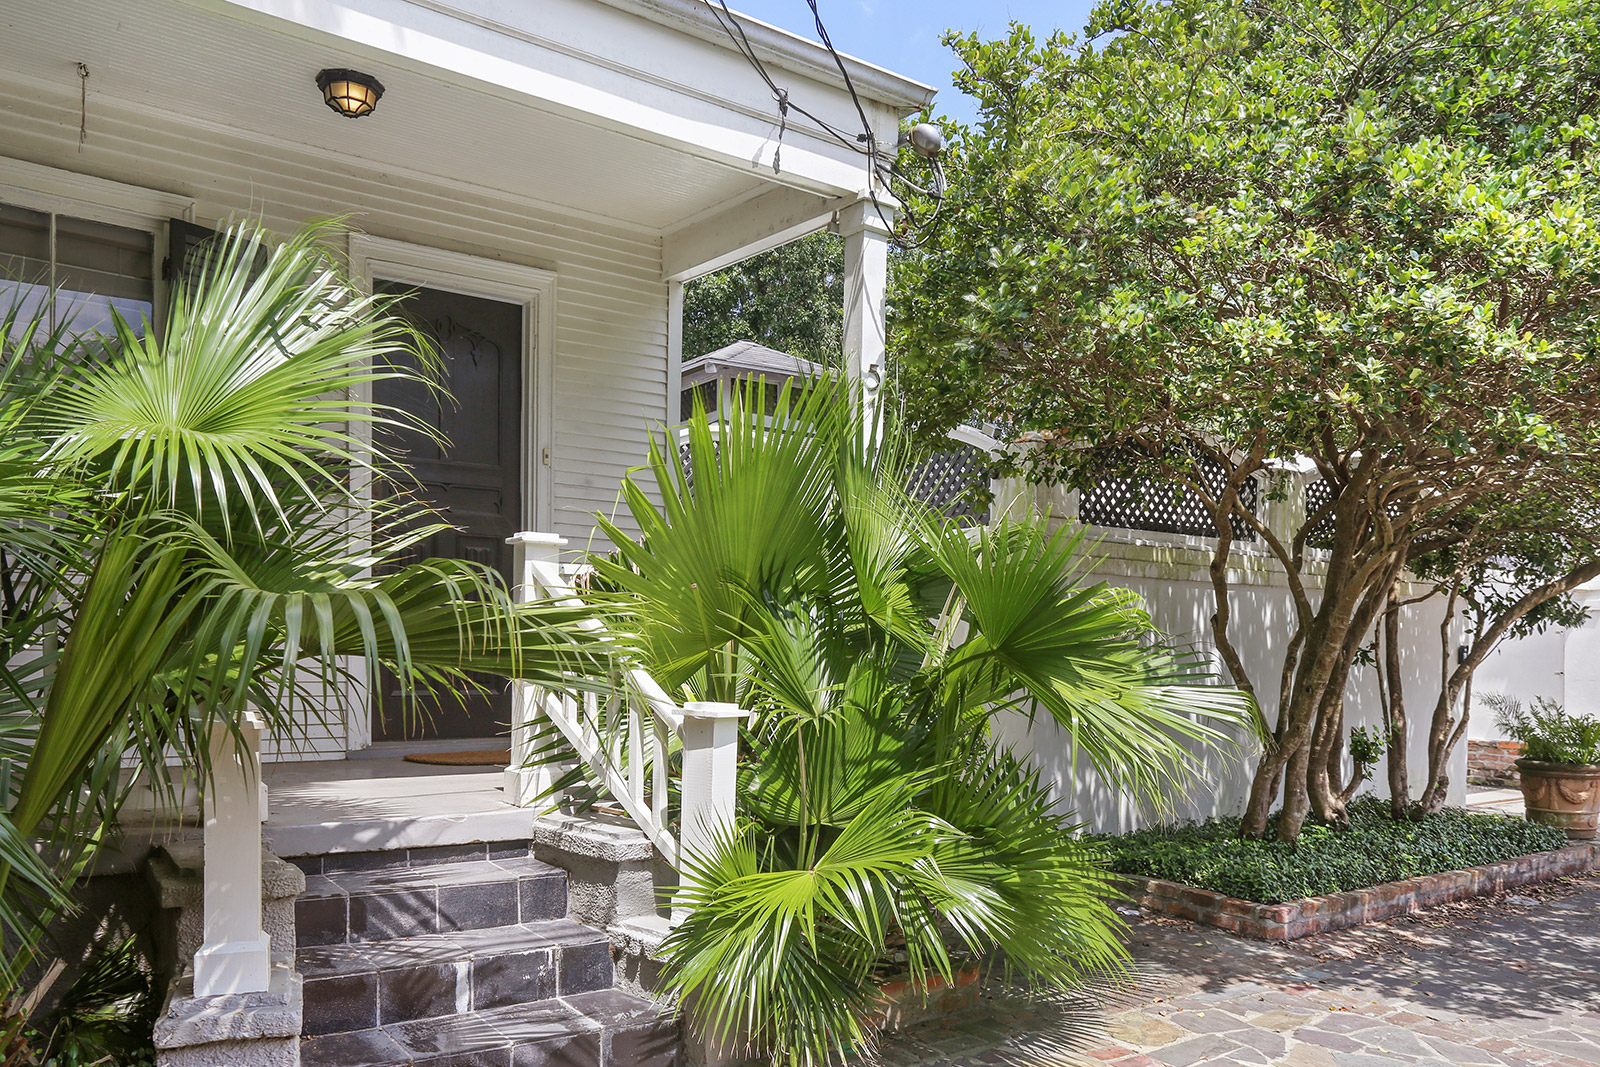 Bywater/Marigny, House, 2 beds, 2.5 baths, $7000 per month New Orleans Rental - devie image_26